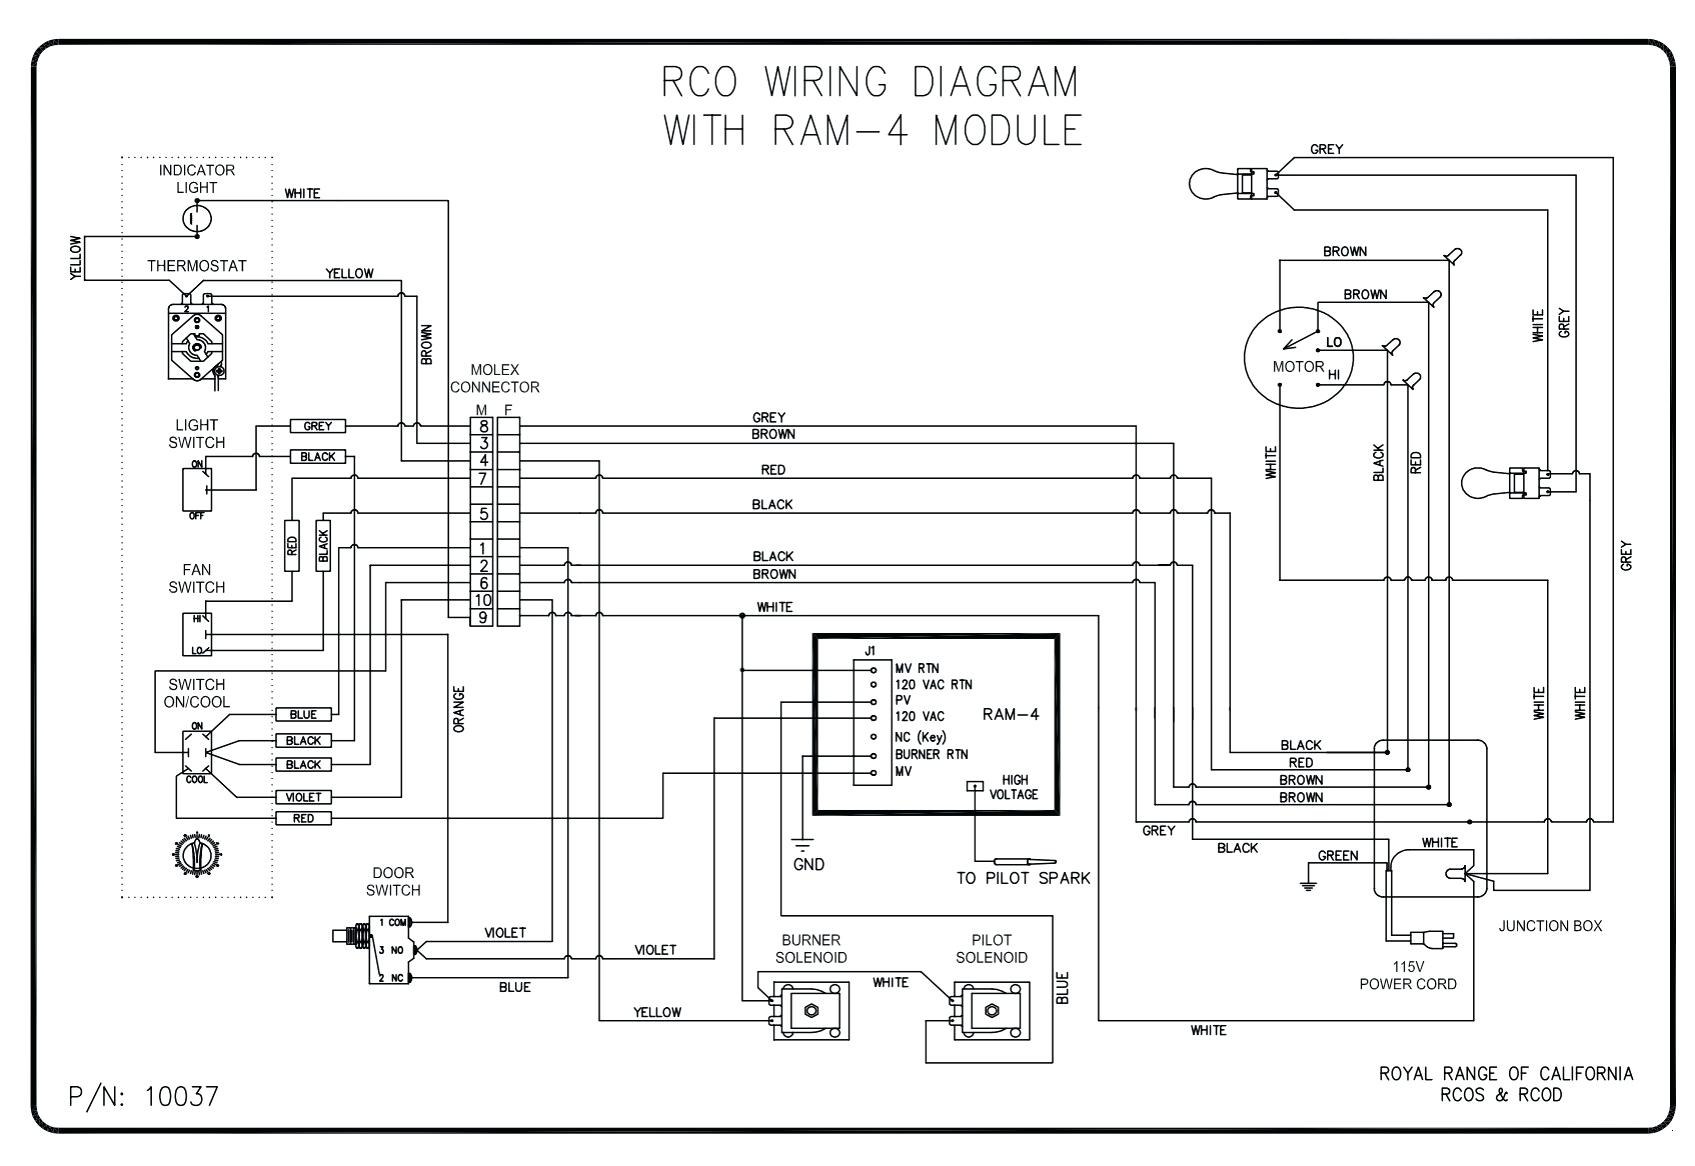 Hotpoint Electric Stove Wiring Diagram Solutions Inside - Wellread - Electric Stove Wiring Diagram